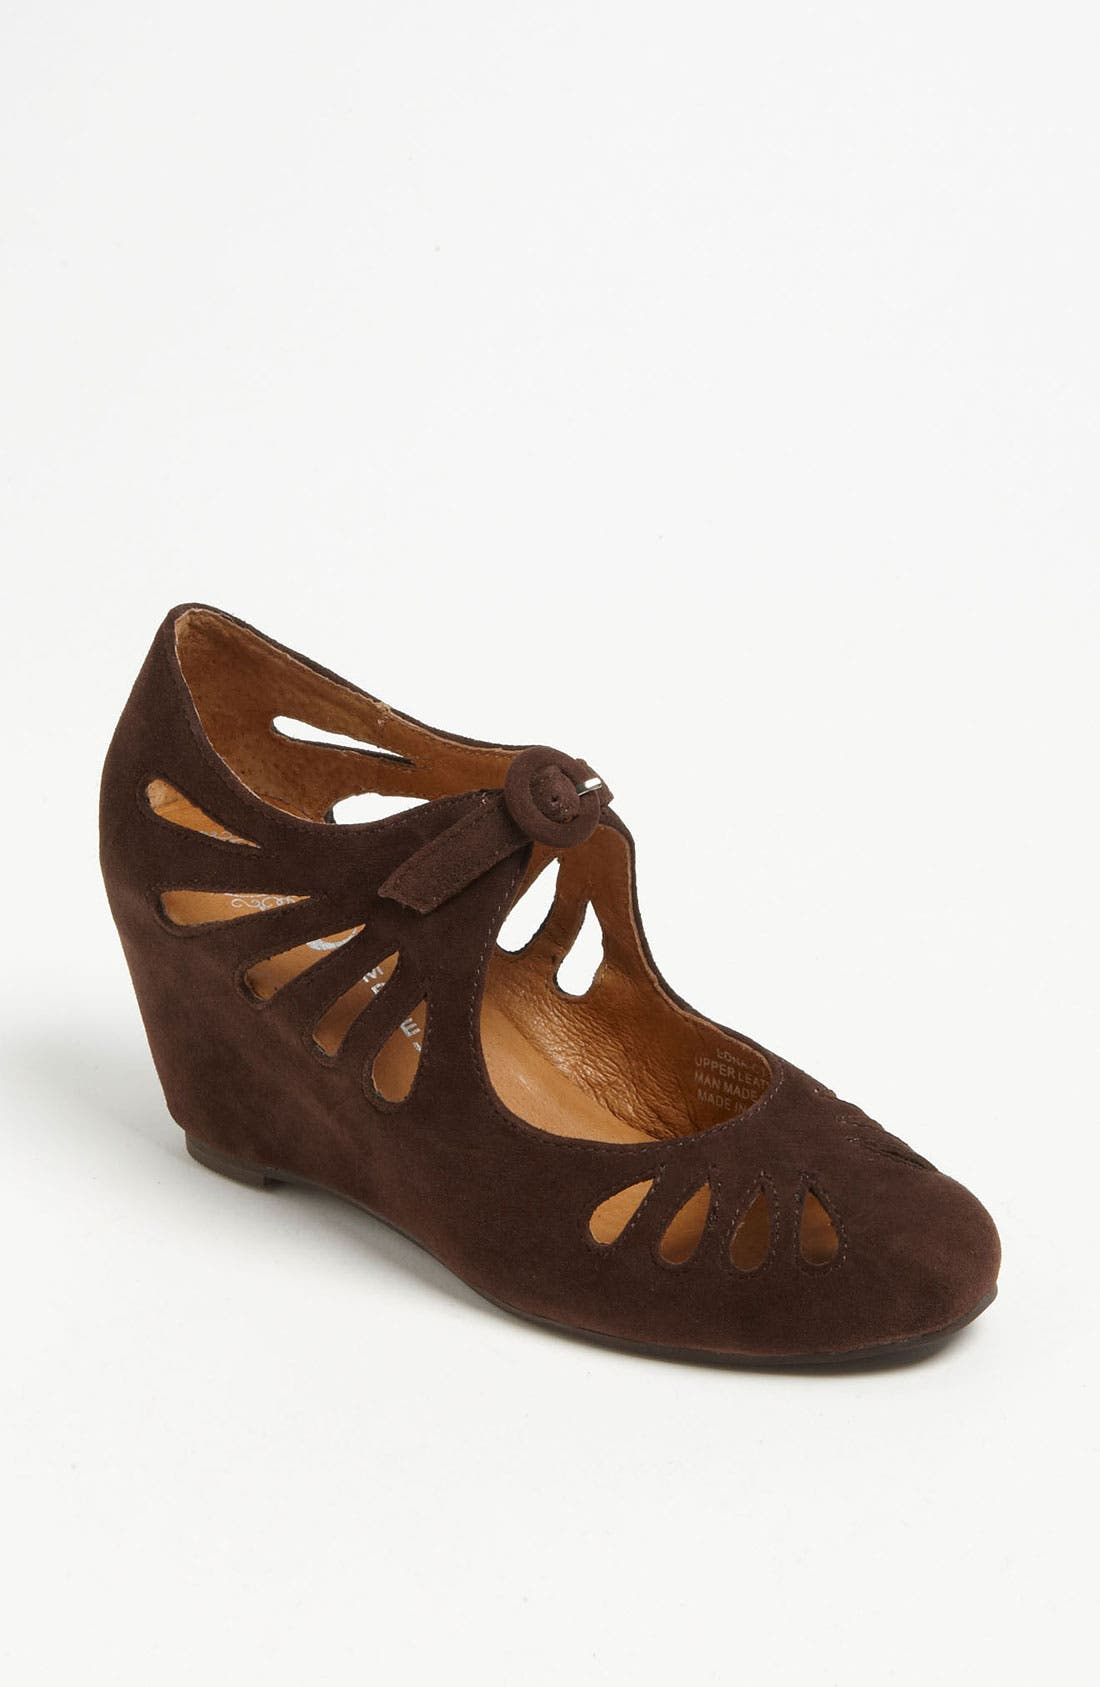 Main Image - Jeffrey Campbell 'Edna' Wedge